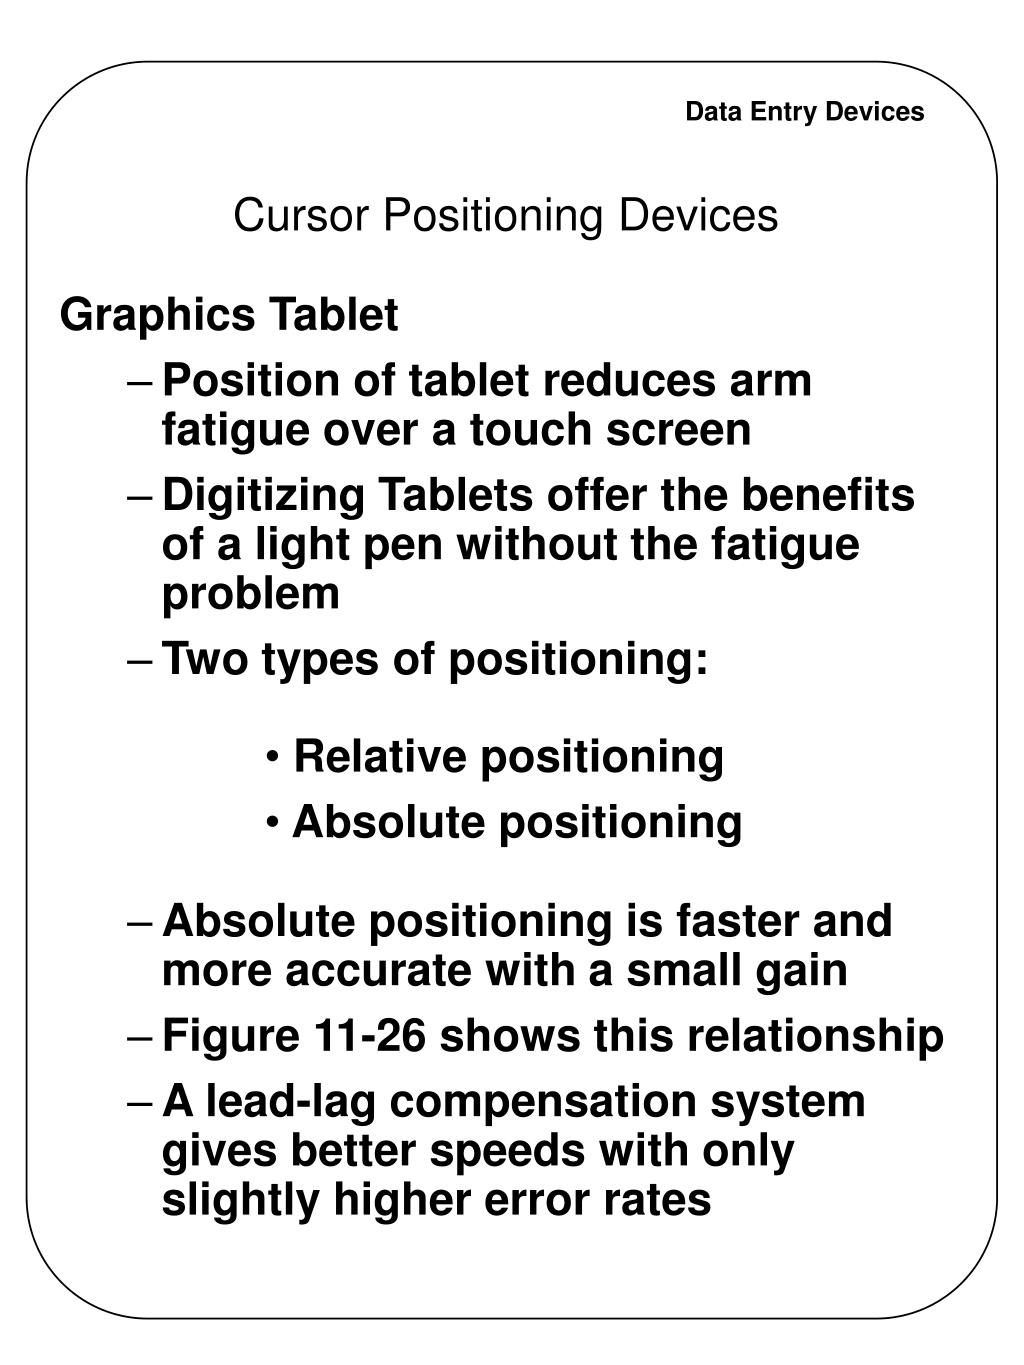 Cursor Positioning Devices